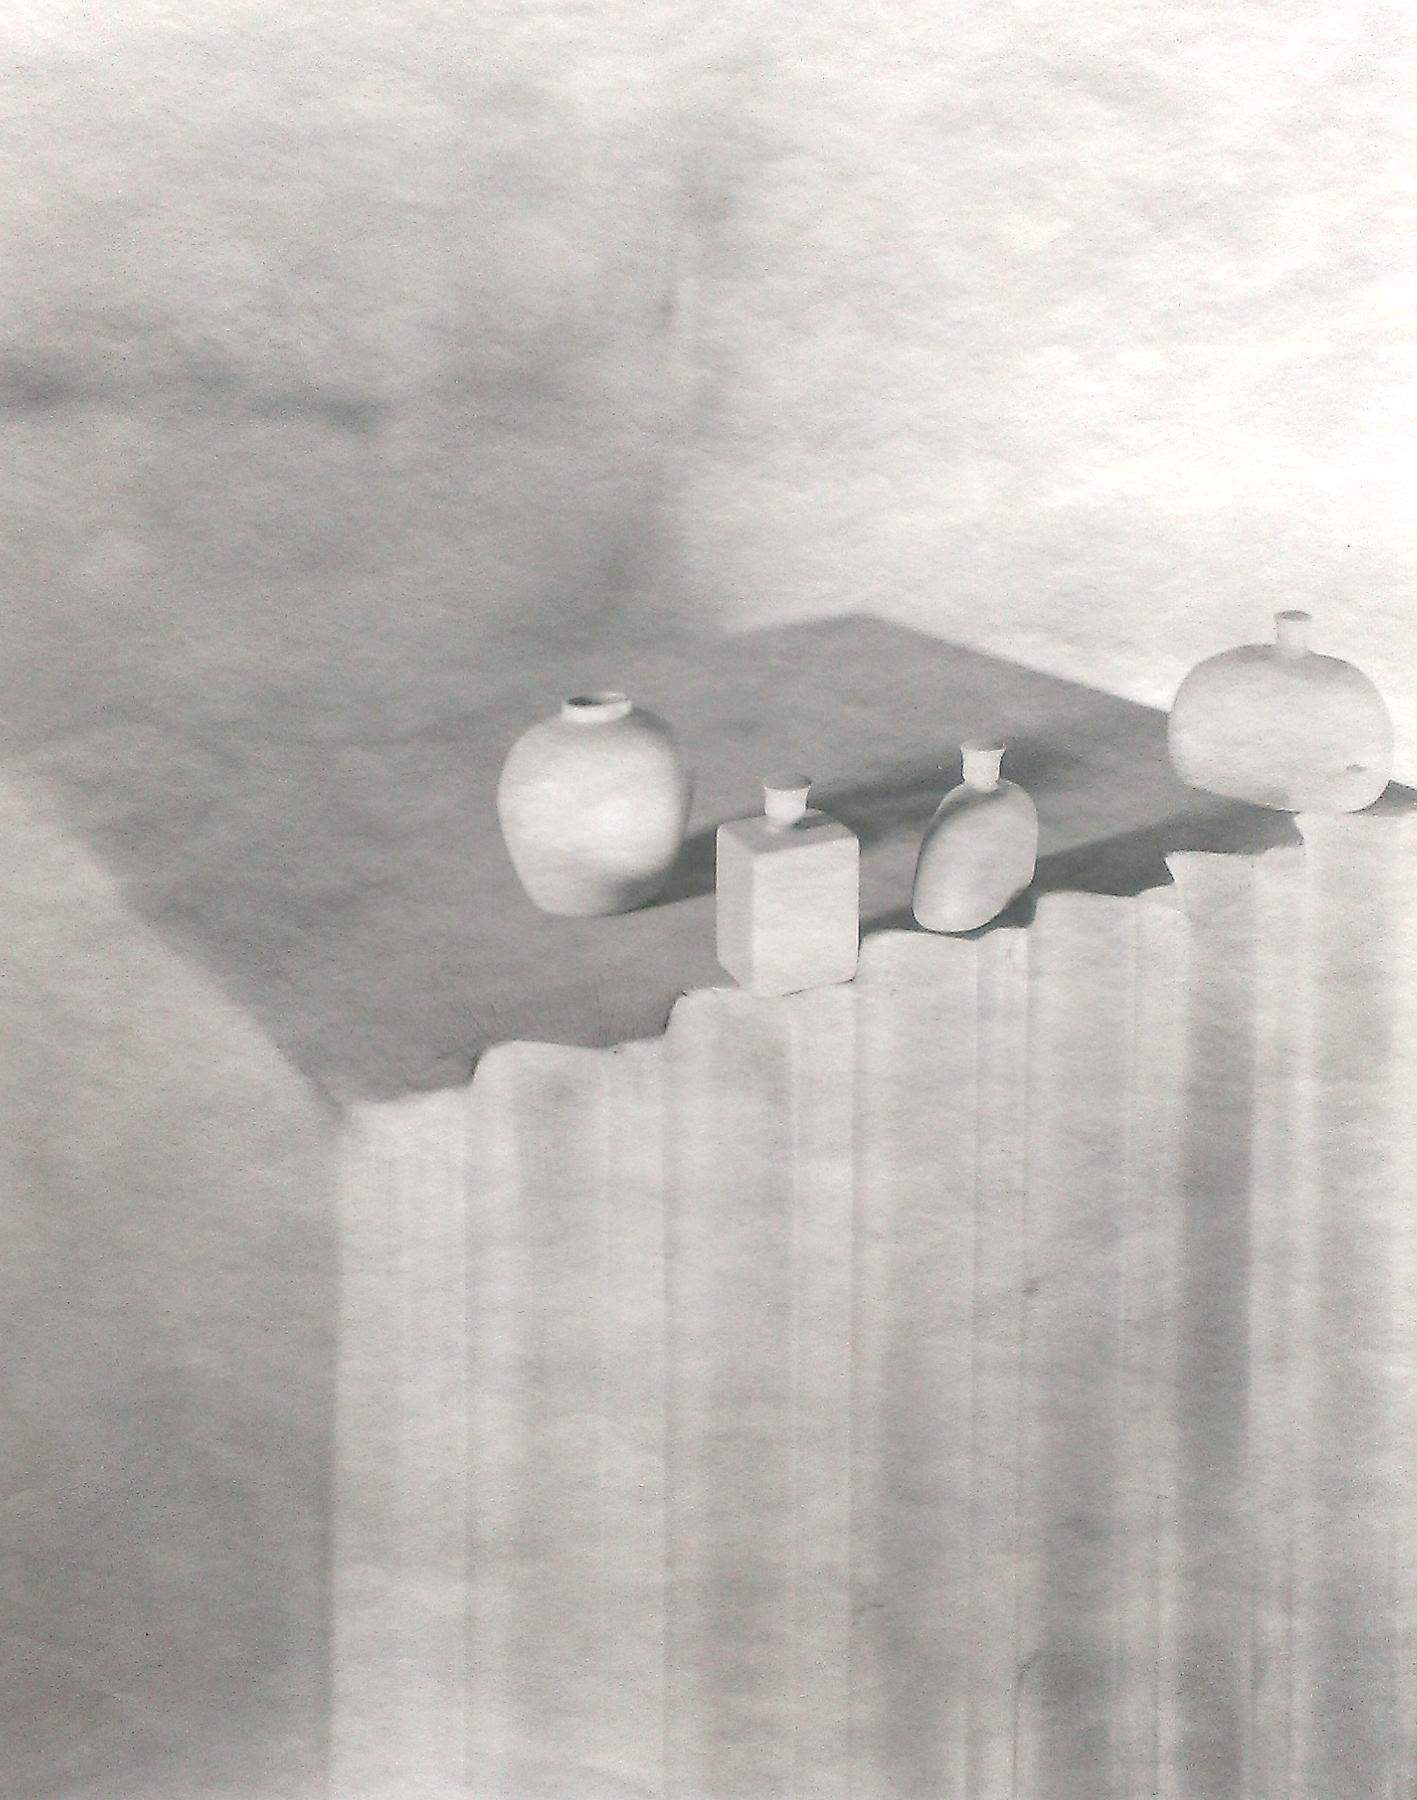 Jan Groover <i>Untitled</i> 1990 Vintage platinum-palladium 10 x 8 inches